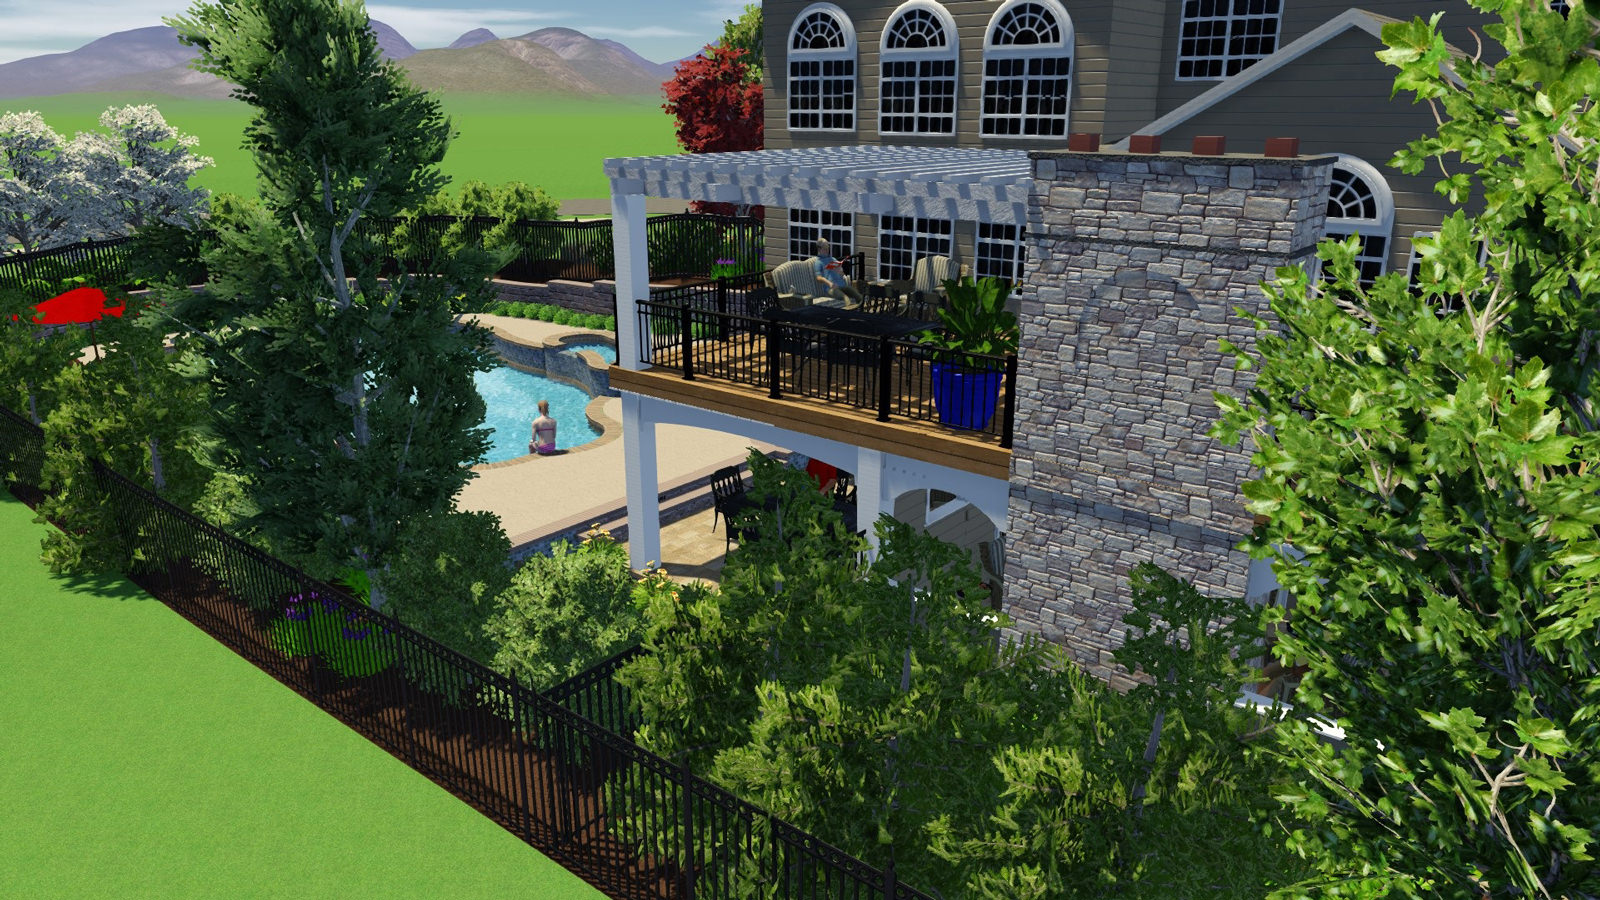 Specifically selected and strategically placed landscaping was key in adding extra privacy from the surrounding neighbors.